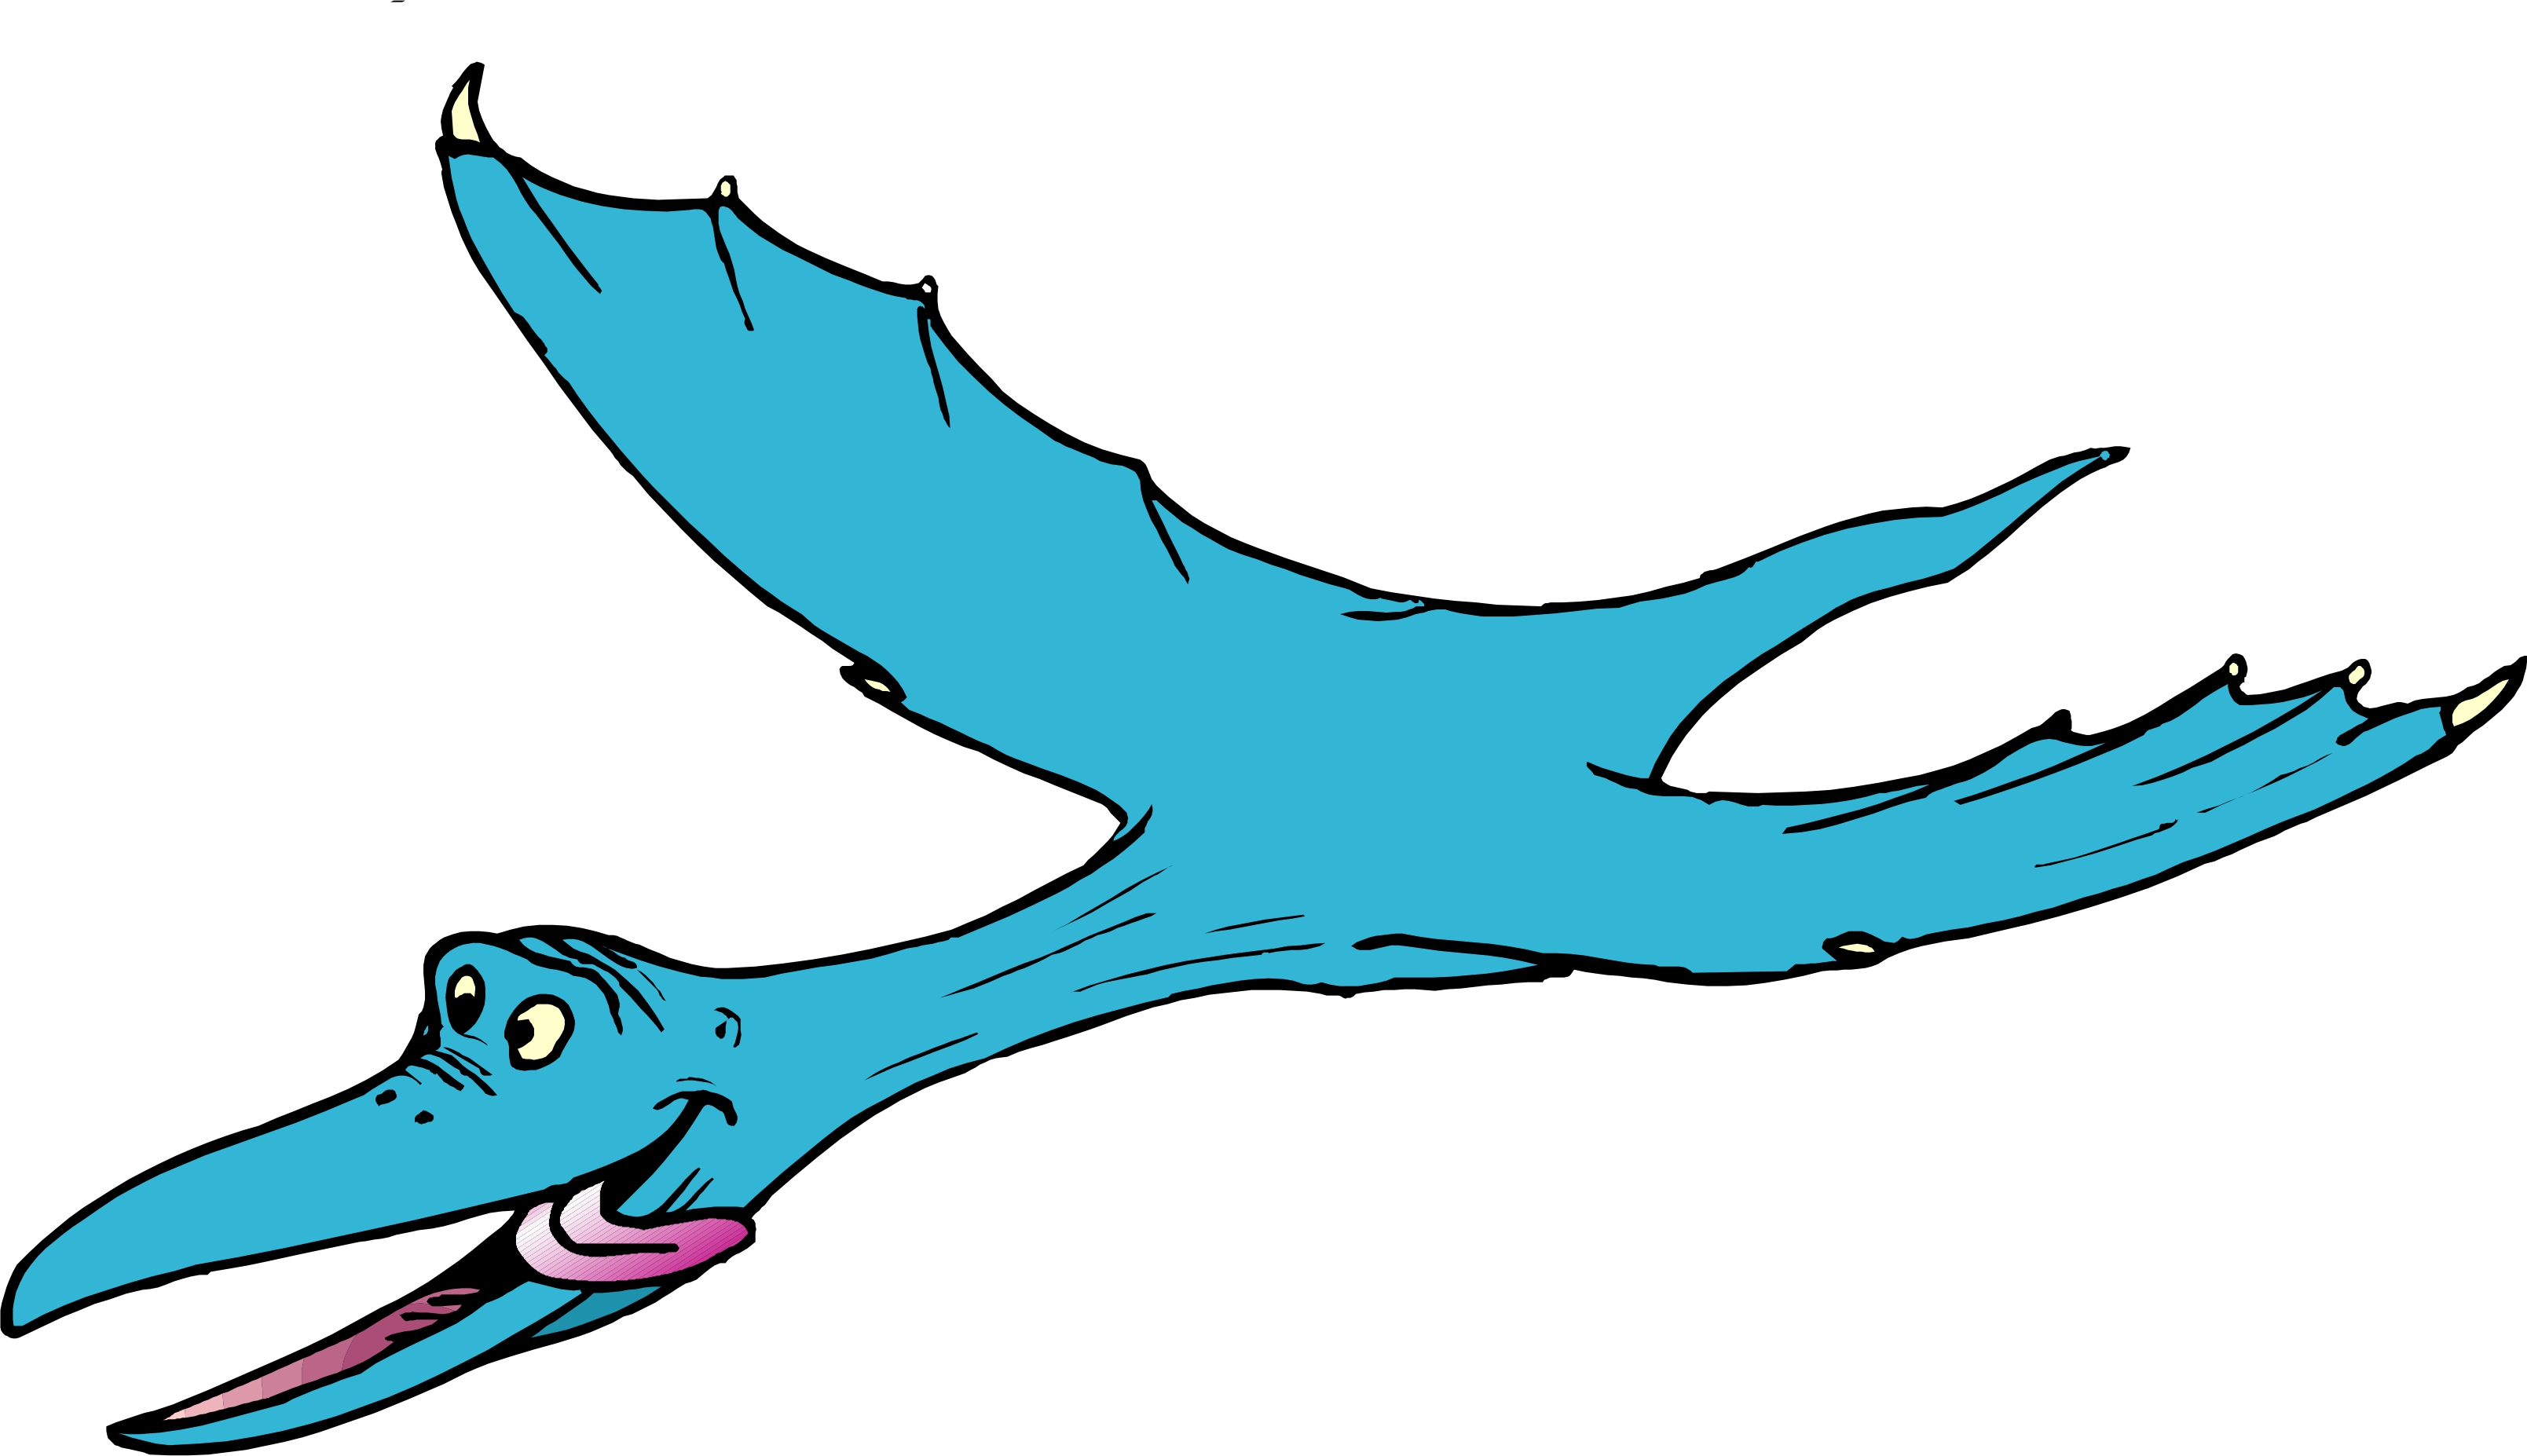 3217x1854 Collection Of Cute Flying Dinosaur Clipart High Quality